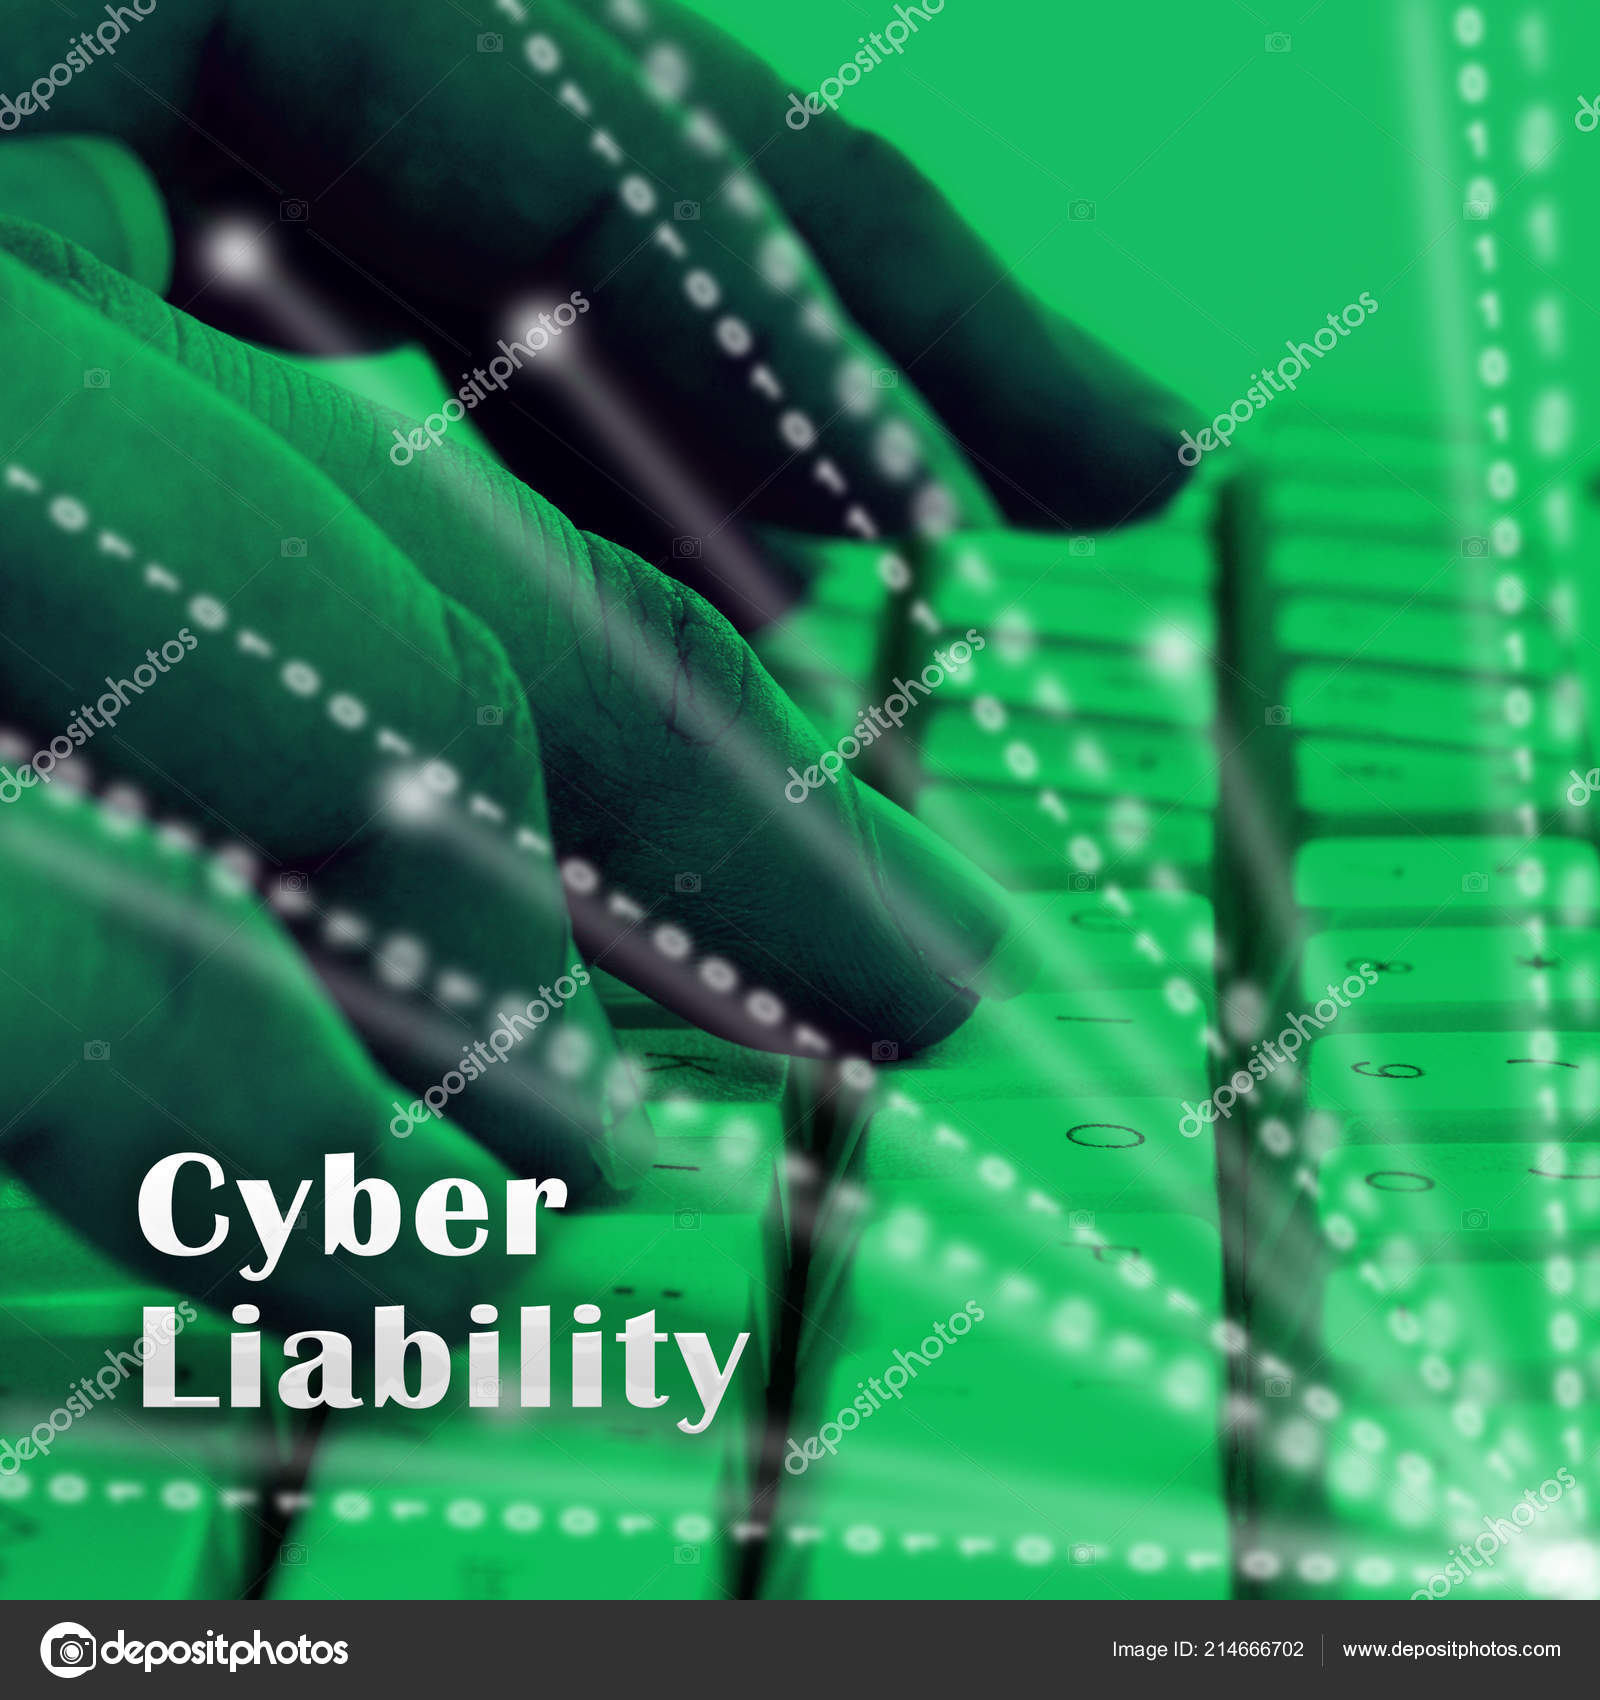 Cyber Liability Insurance Data Cover Illustration Shows Internet